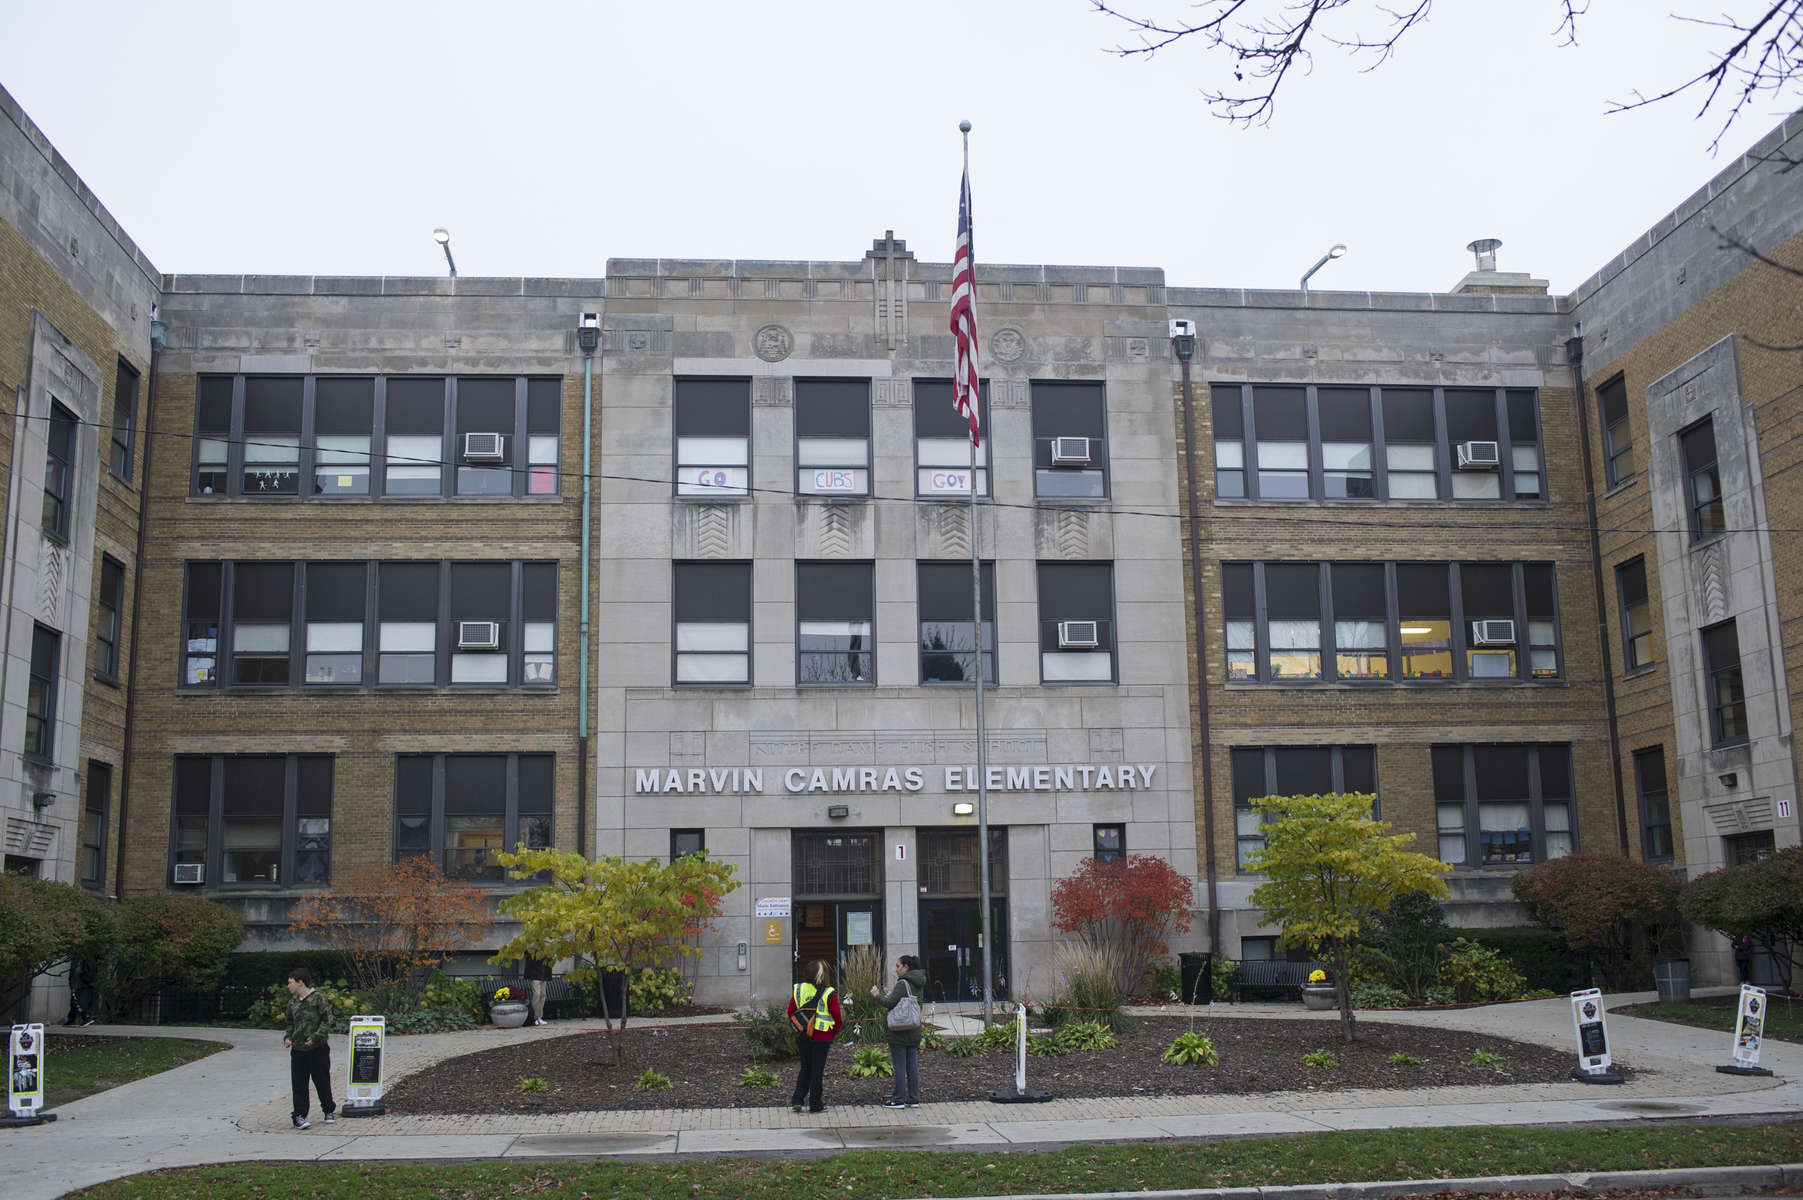 The front entrance of Marvin Camras Children's Engineering School as seen from the east side of the 3000 block of Mango Avenue in the Belmont Cragin neighborhood of Chicago, November 3, 2016.